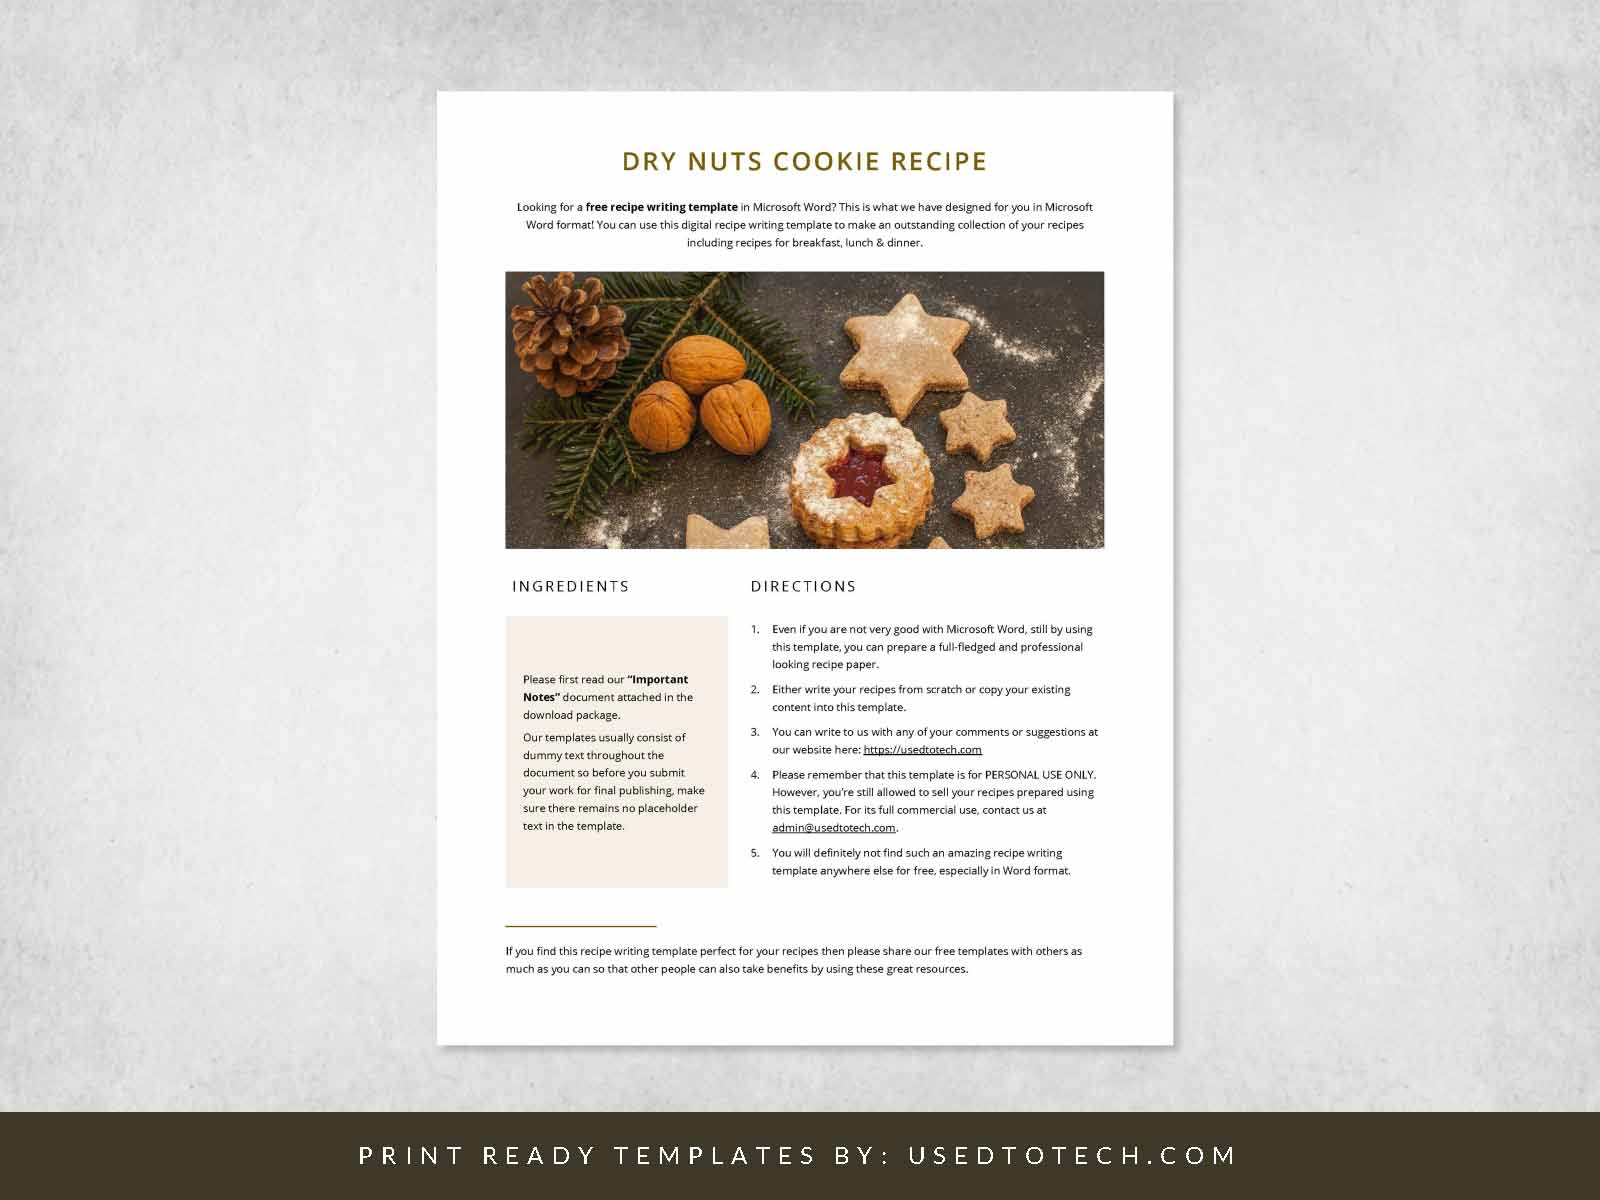 Free instant recipe writing template in Word